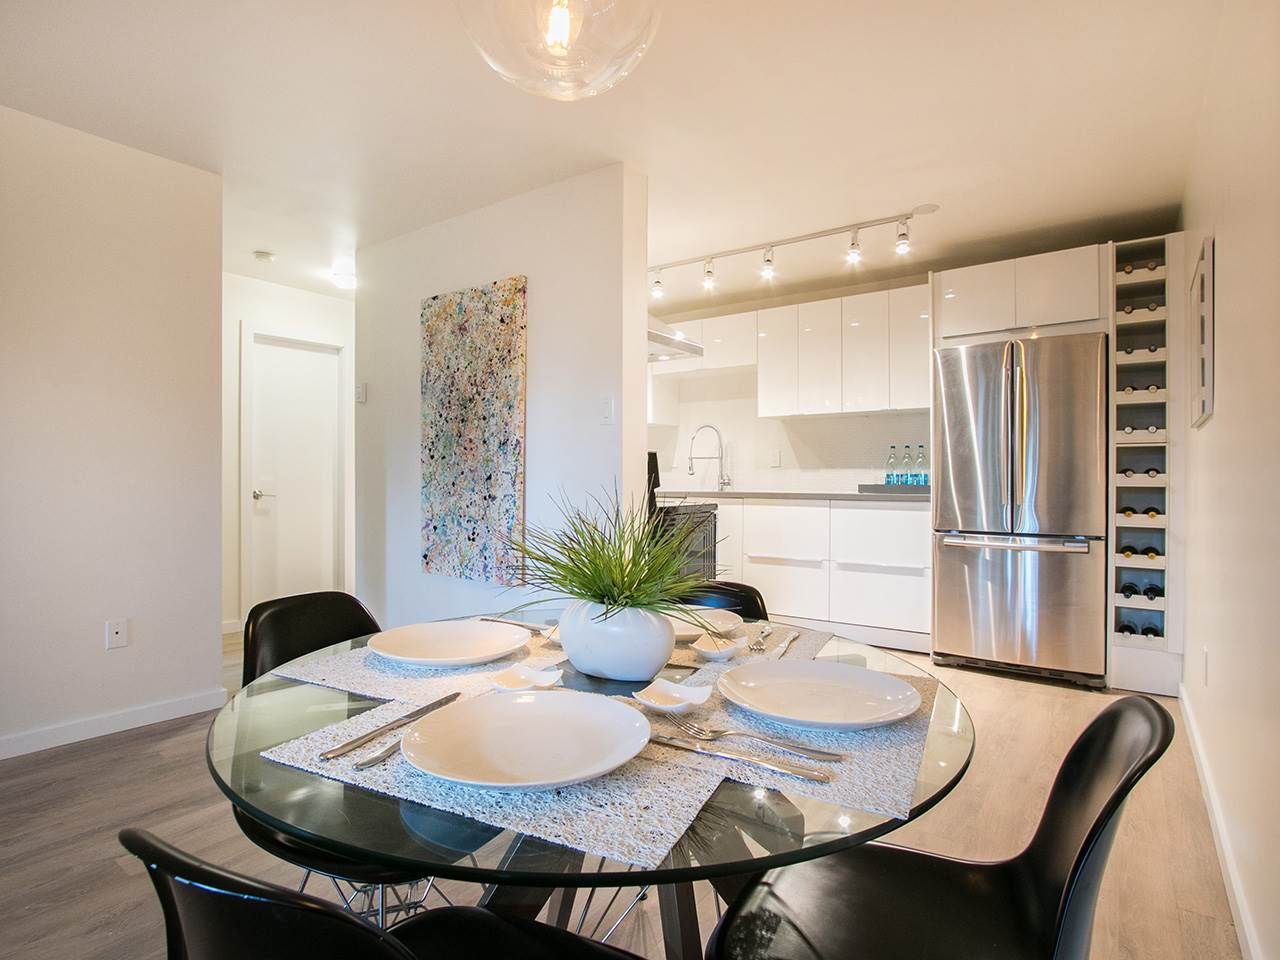 Main Photo: 101 3353 HEATHER STREET in Vancouver: Cambie Condo for sale (Vancouver West)  : MLS®# R2046896